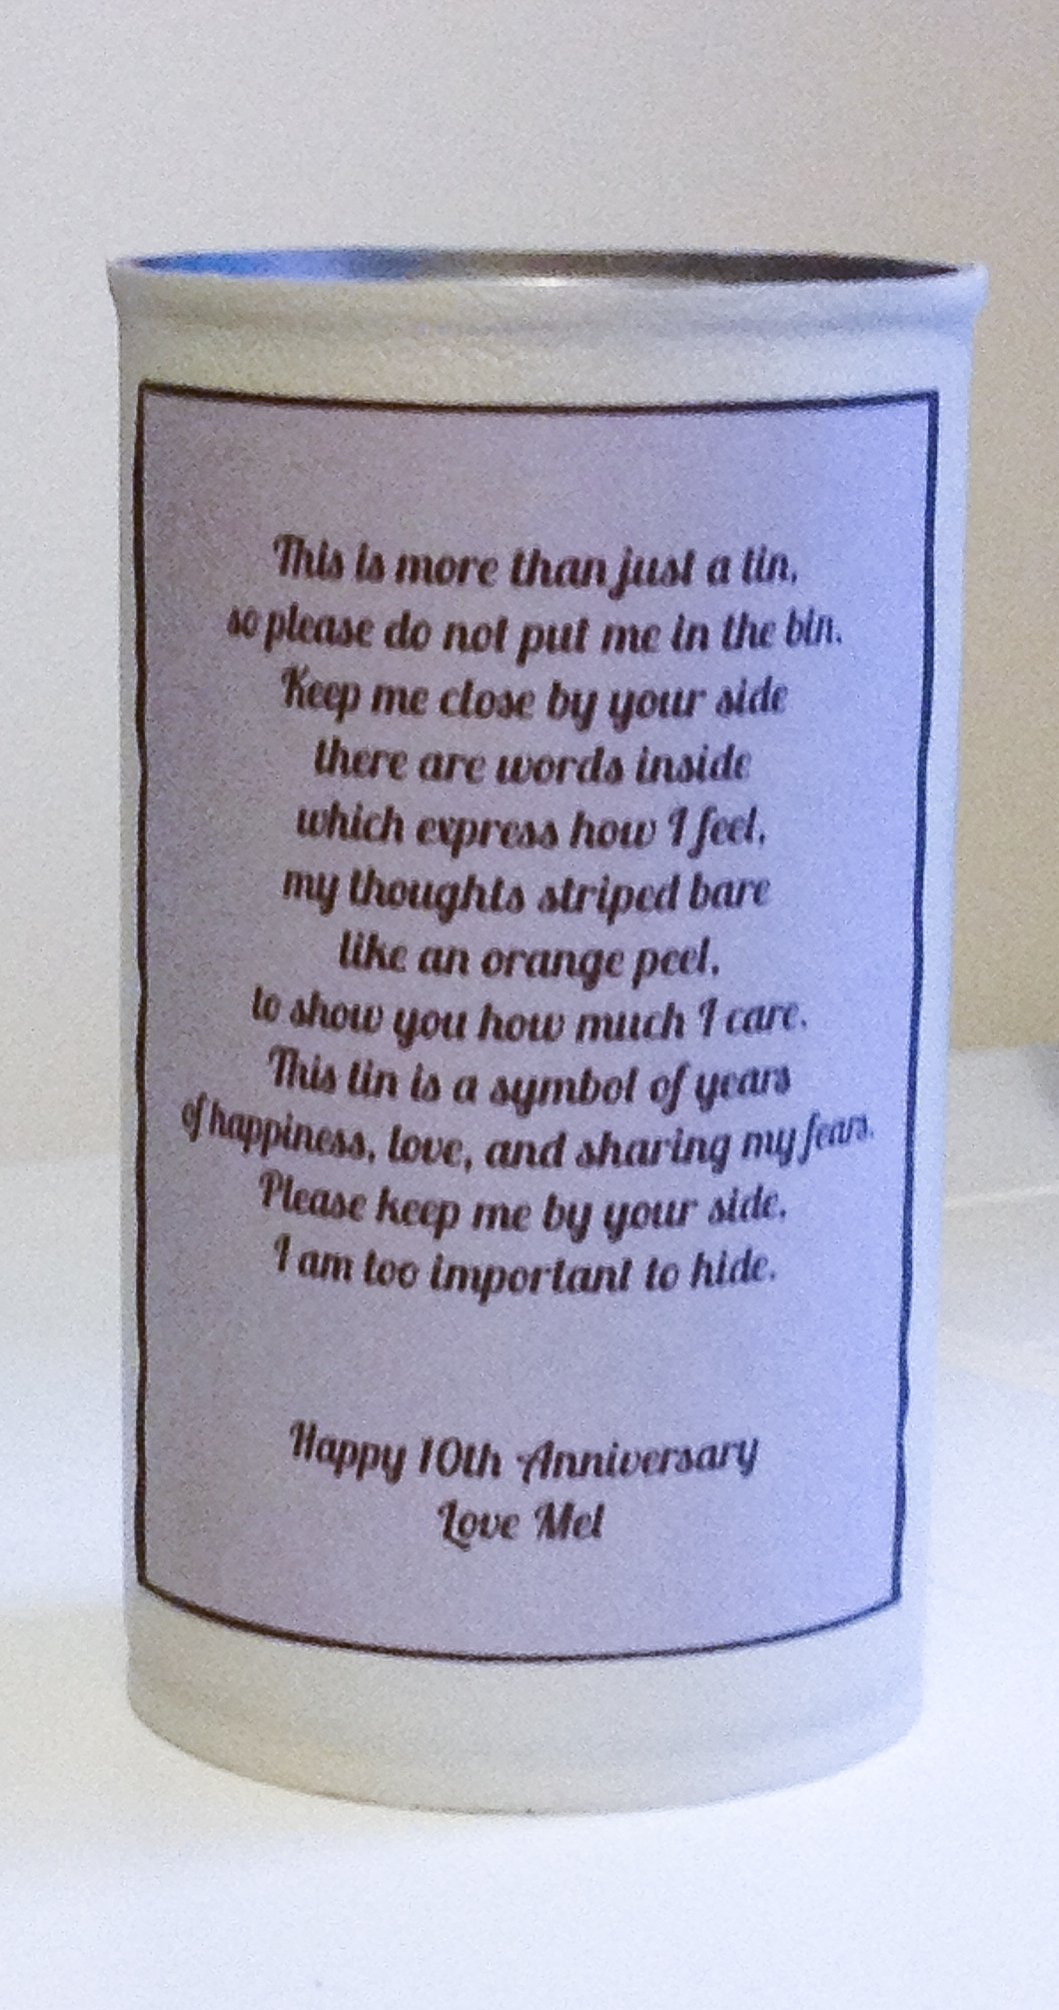 10 Awesome 10 Year Anniversary Ideas For Him a diy 10th anniversary gift theoriginalthread 1 2021